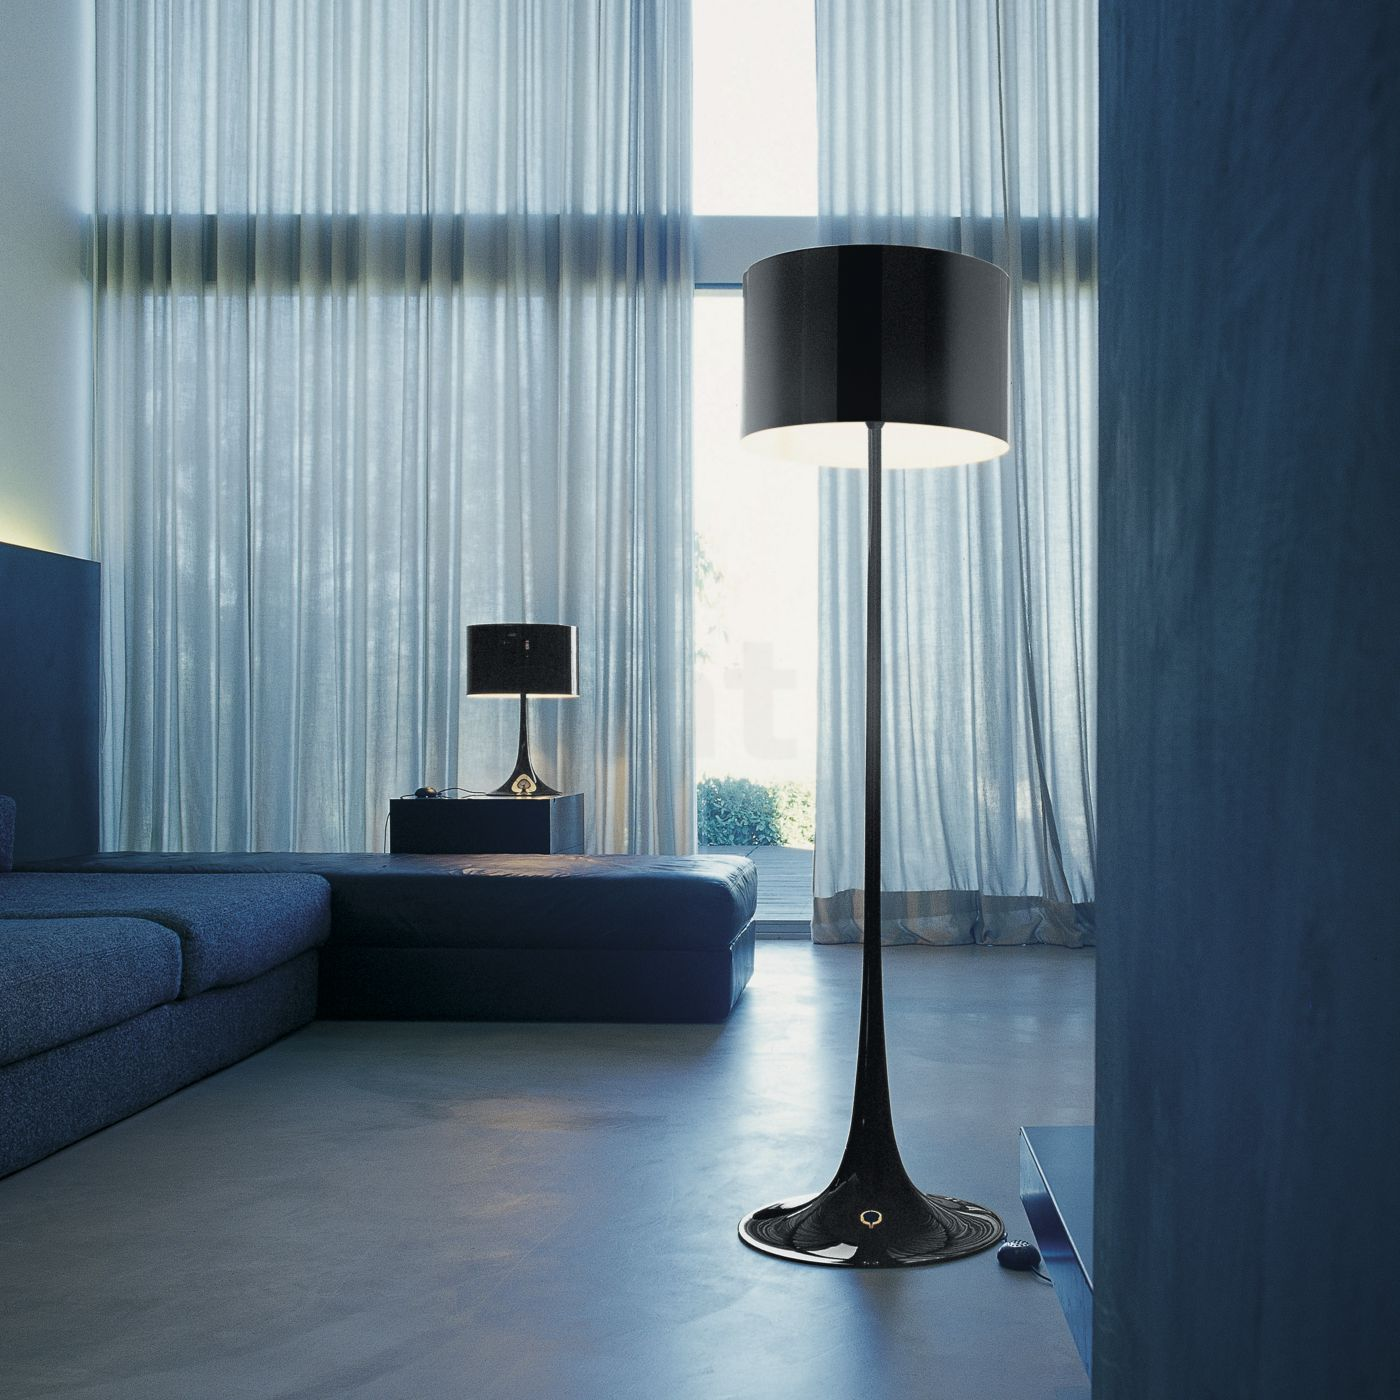 Flos Spun Light F Kaufen Bei Light11.de